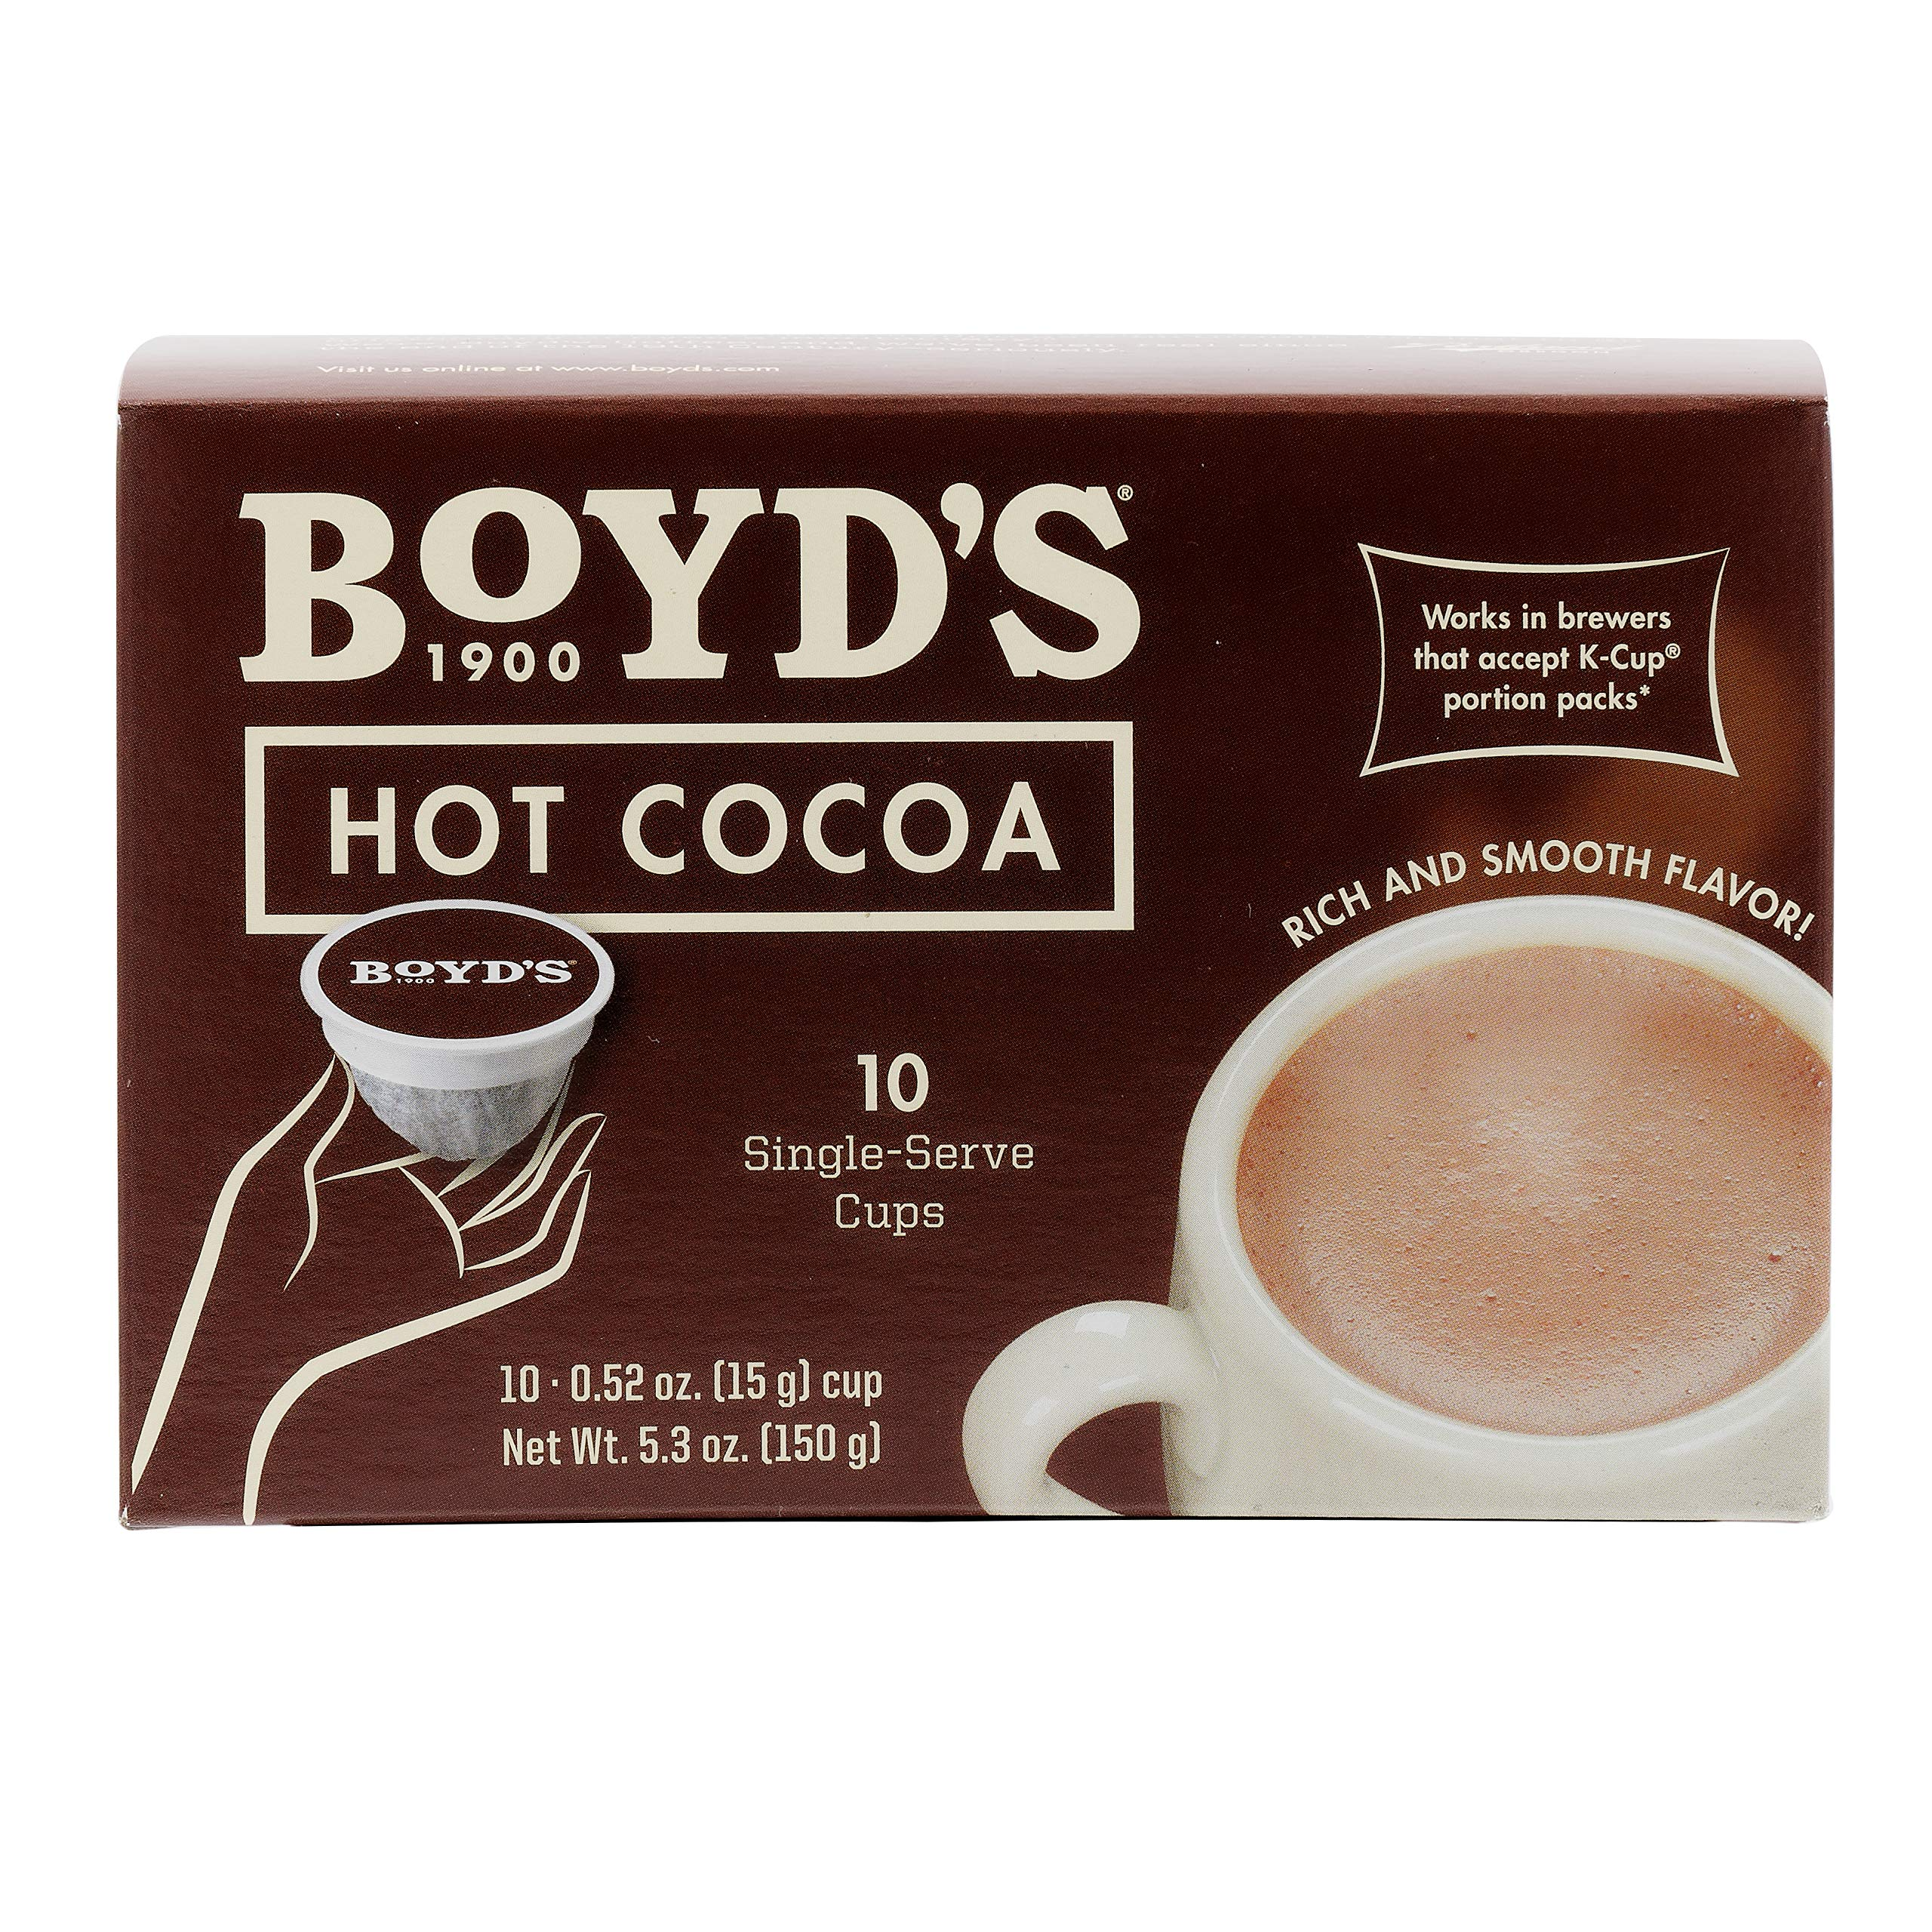 Boyd's Hot Cocoa  - Single Cup - 10 Count Per Box (Case of 6) by Boyd's Coffee